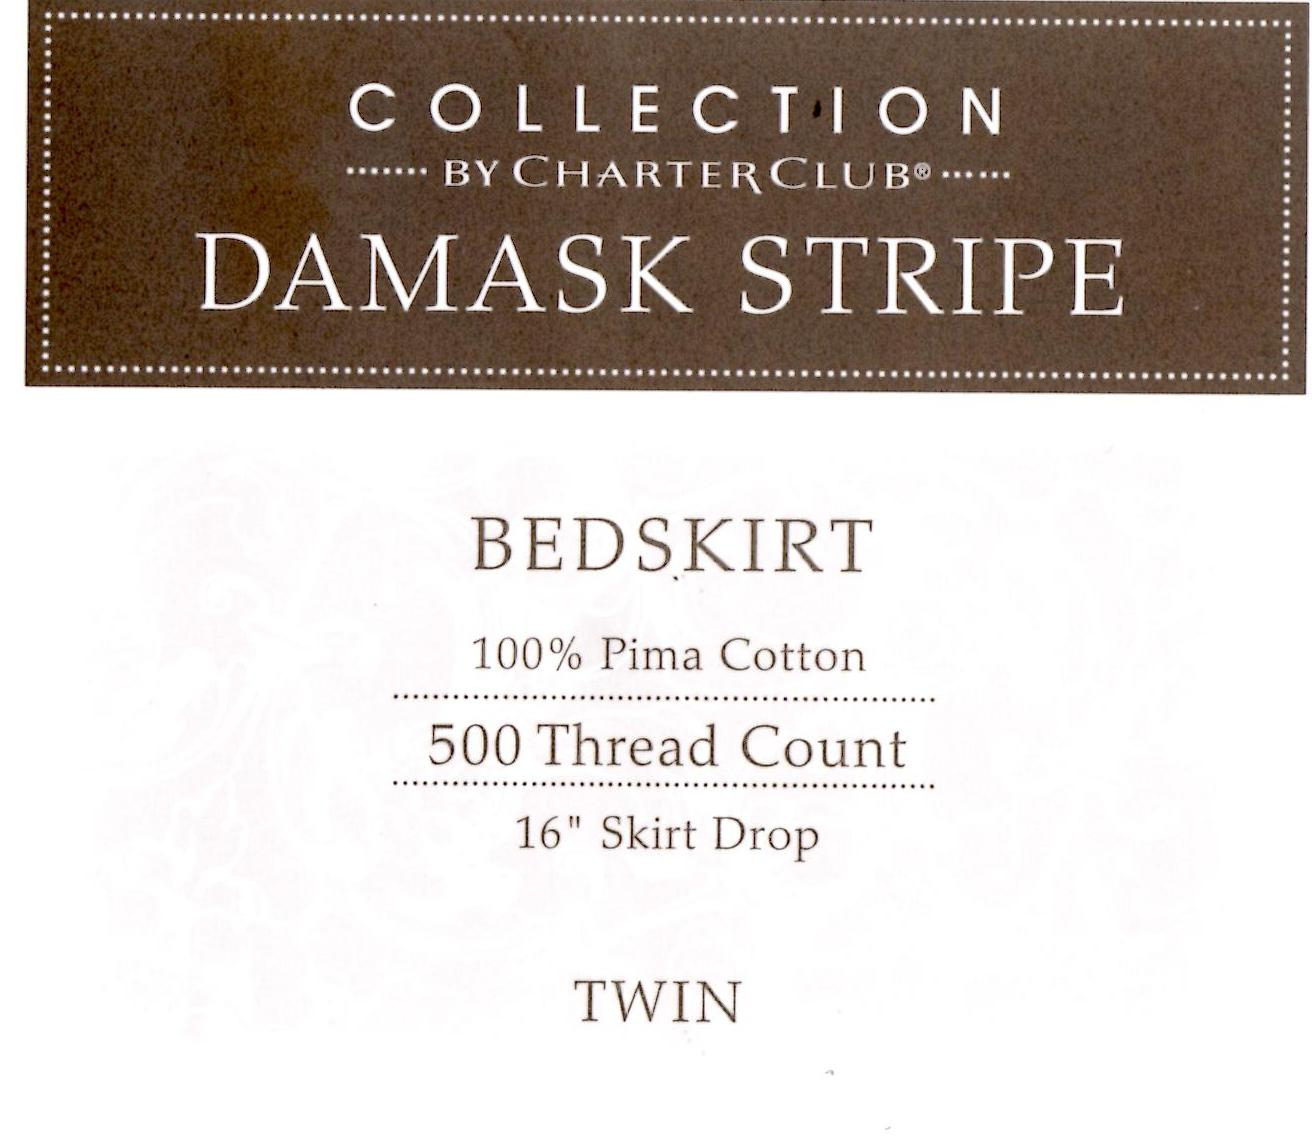 Charter Club Damask Stripe Twin Bedskirt